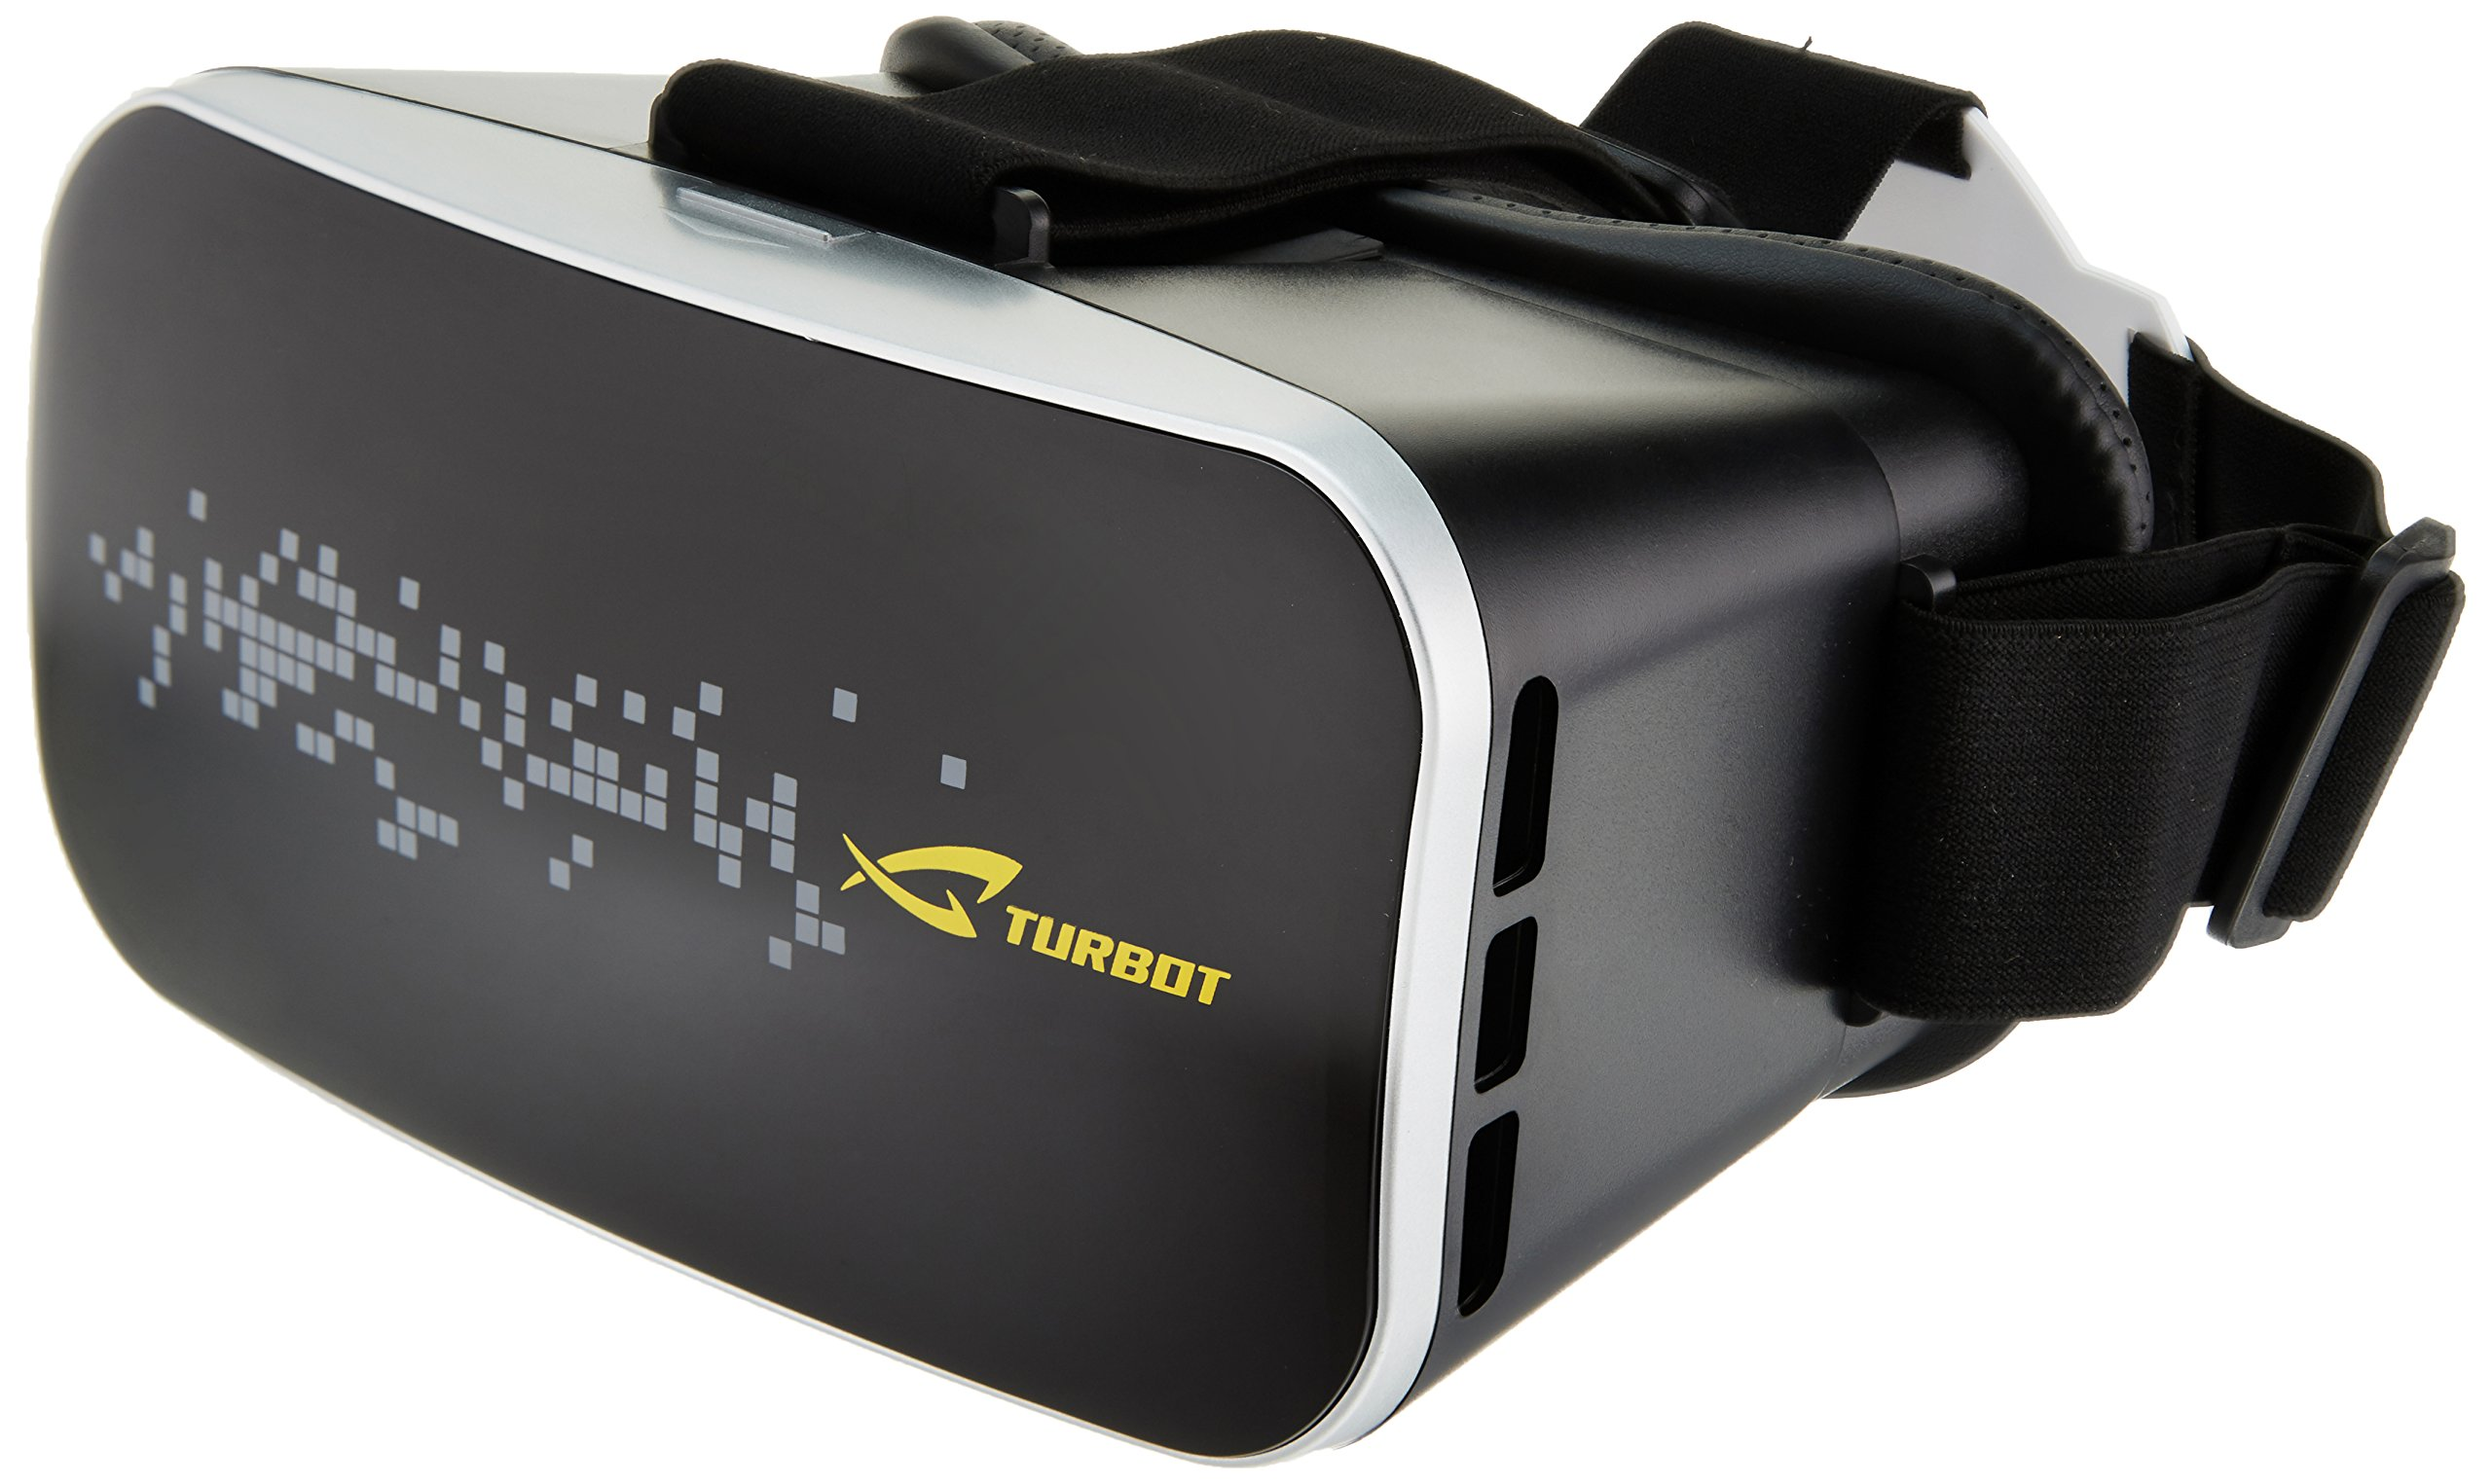 Turbot 3D VR Virtual Reality Headsets Glasses Box with Adjustable Head Straps For 3D Movies Games